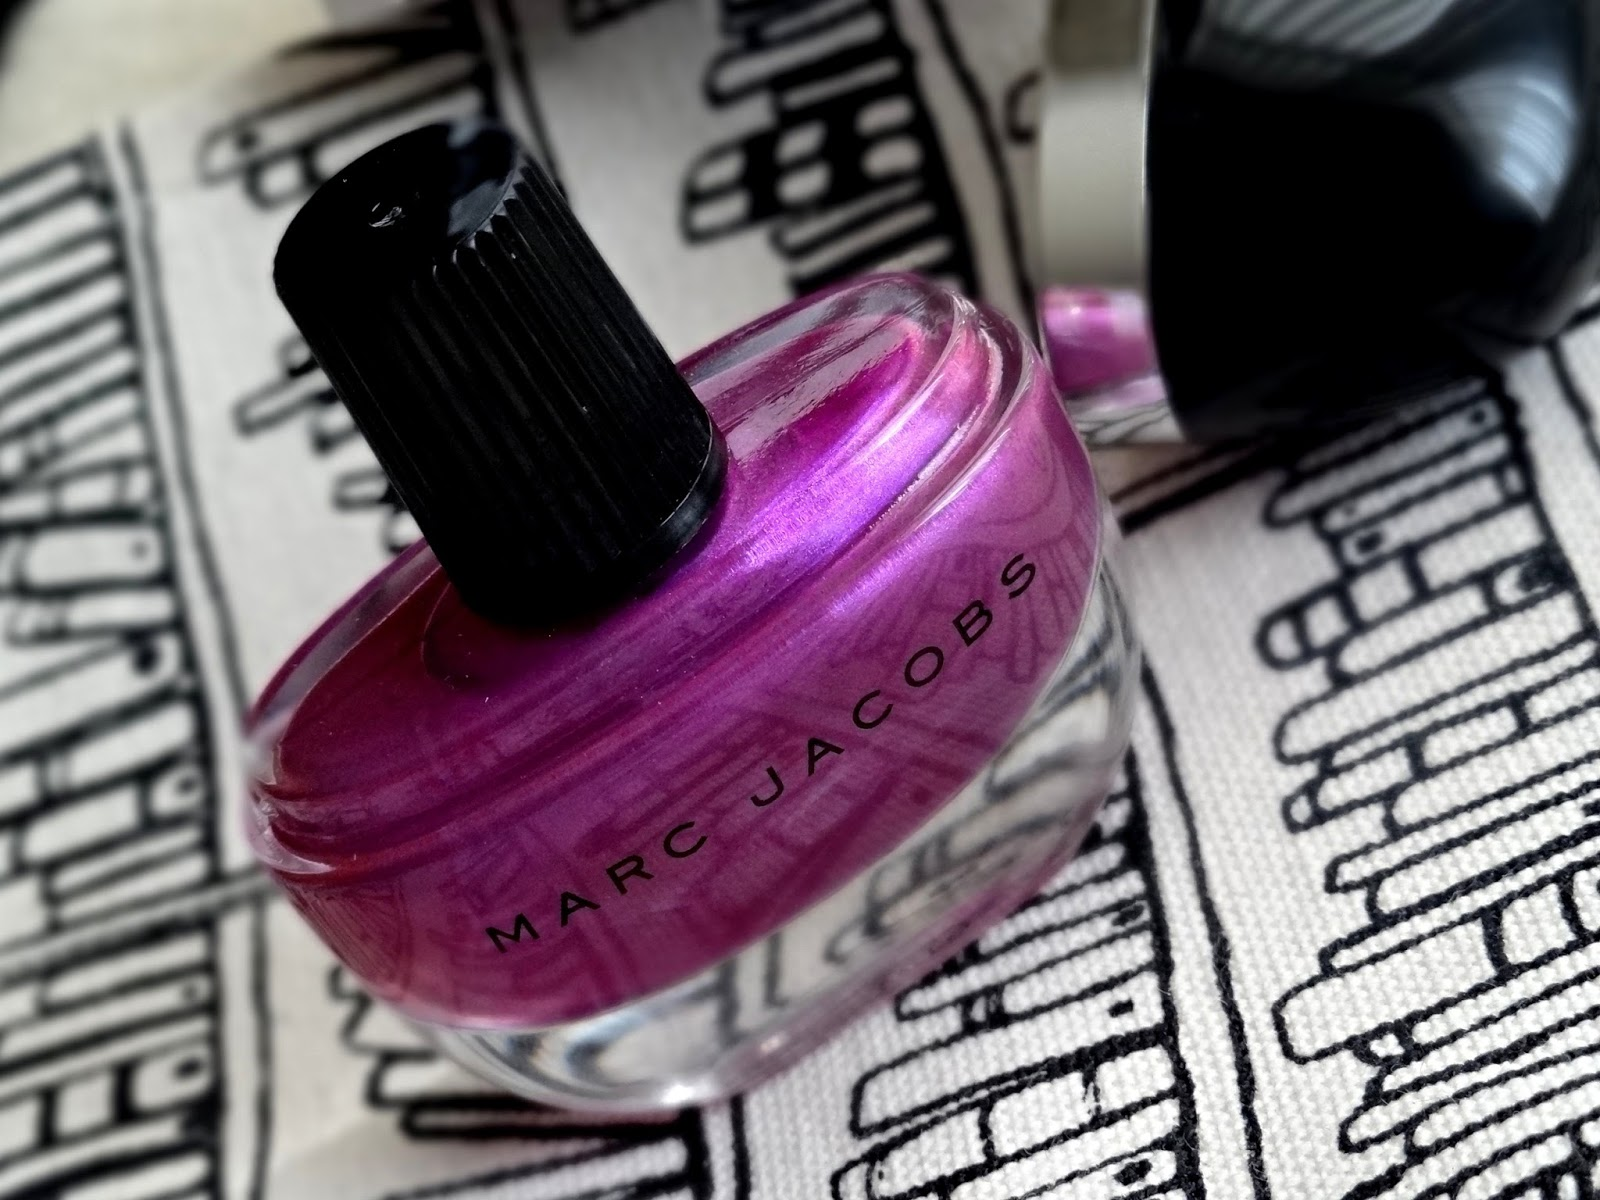 Marc Jacobs Enamored Hi-Shine Nail Lacquer in Oui!